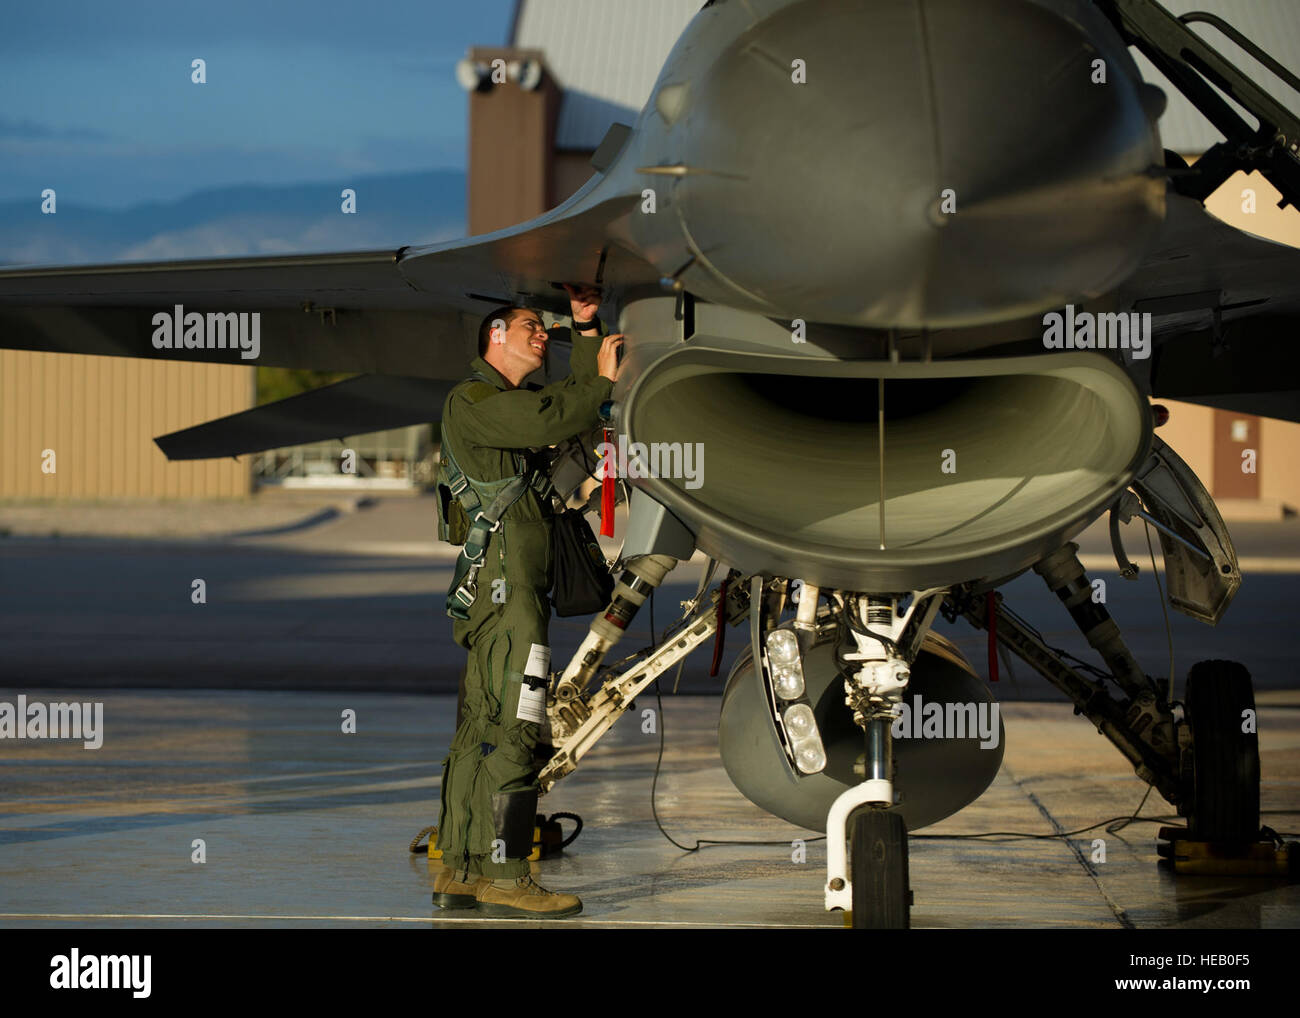 Captain Jake Pippenger, 54th Fighter Group pilot, inspects an F-16 Fighting Falcon to prepare for a training sortie - Stock Image